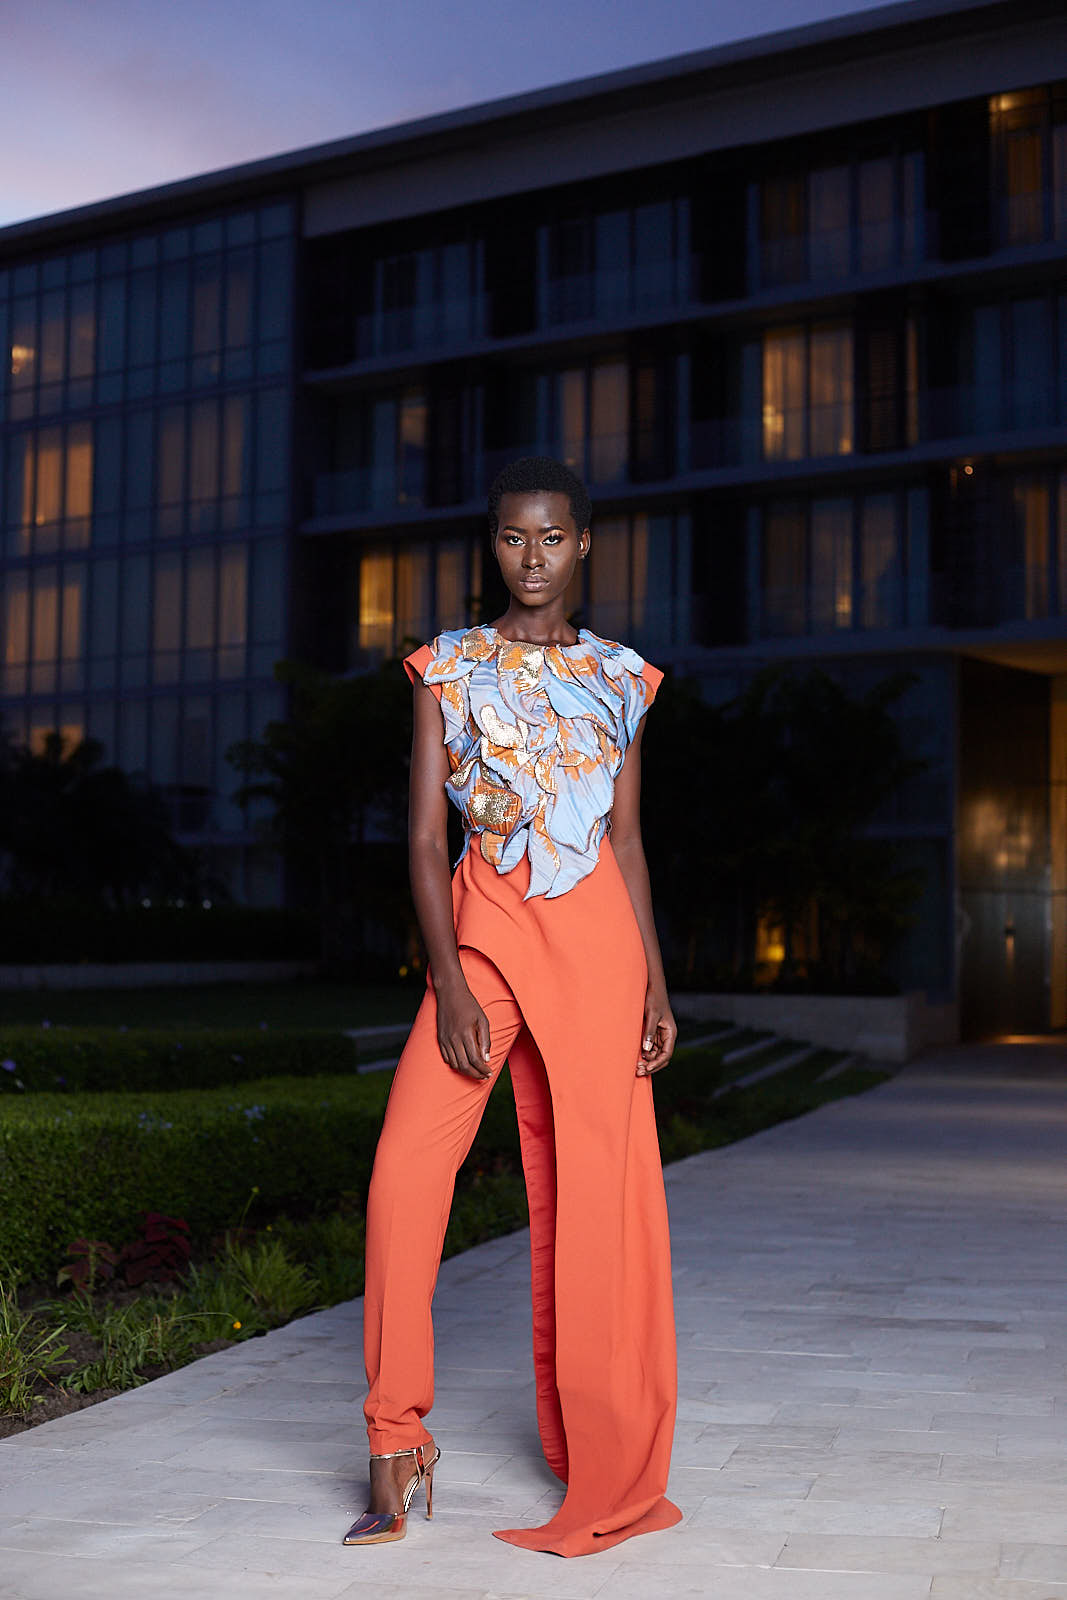 Yutee Rone's ethereal SS19 Lotus collection is a must-see